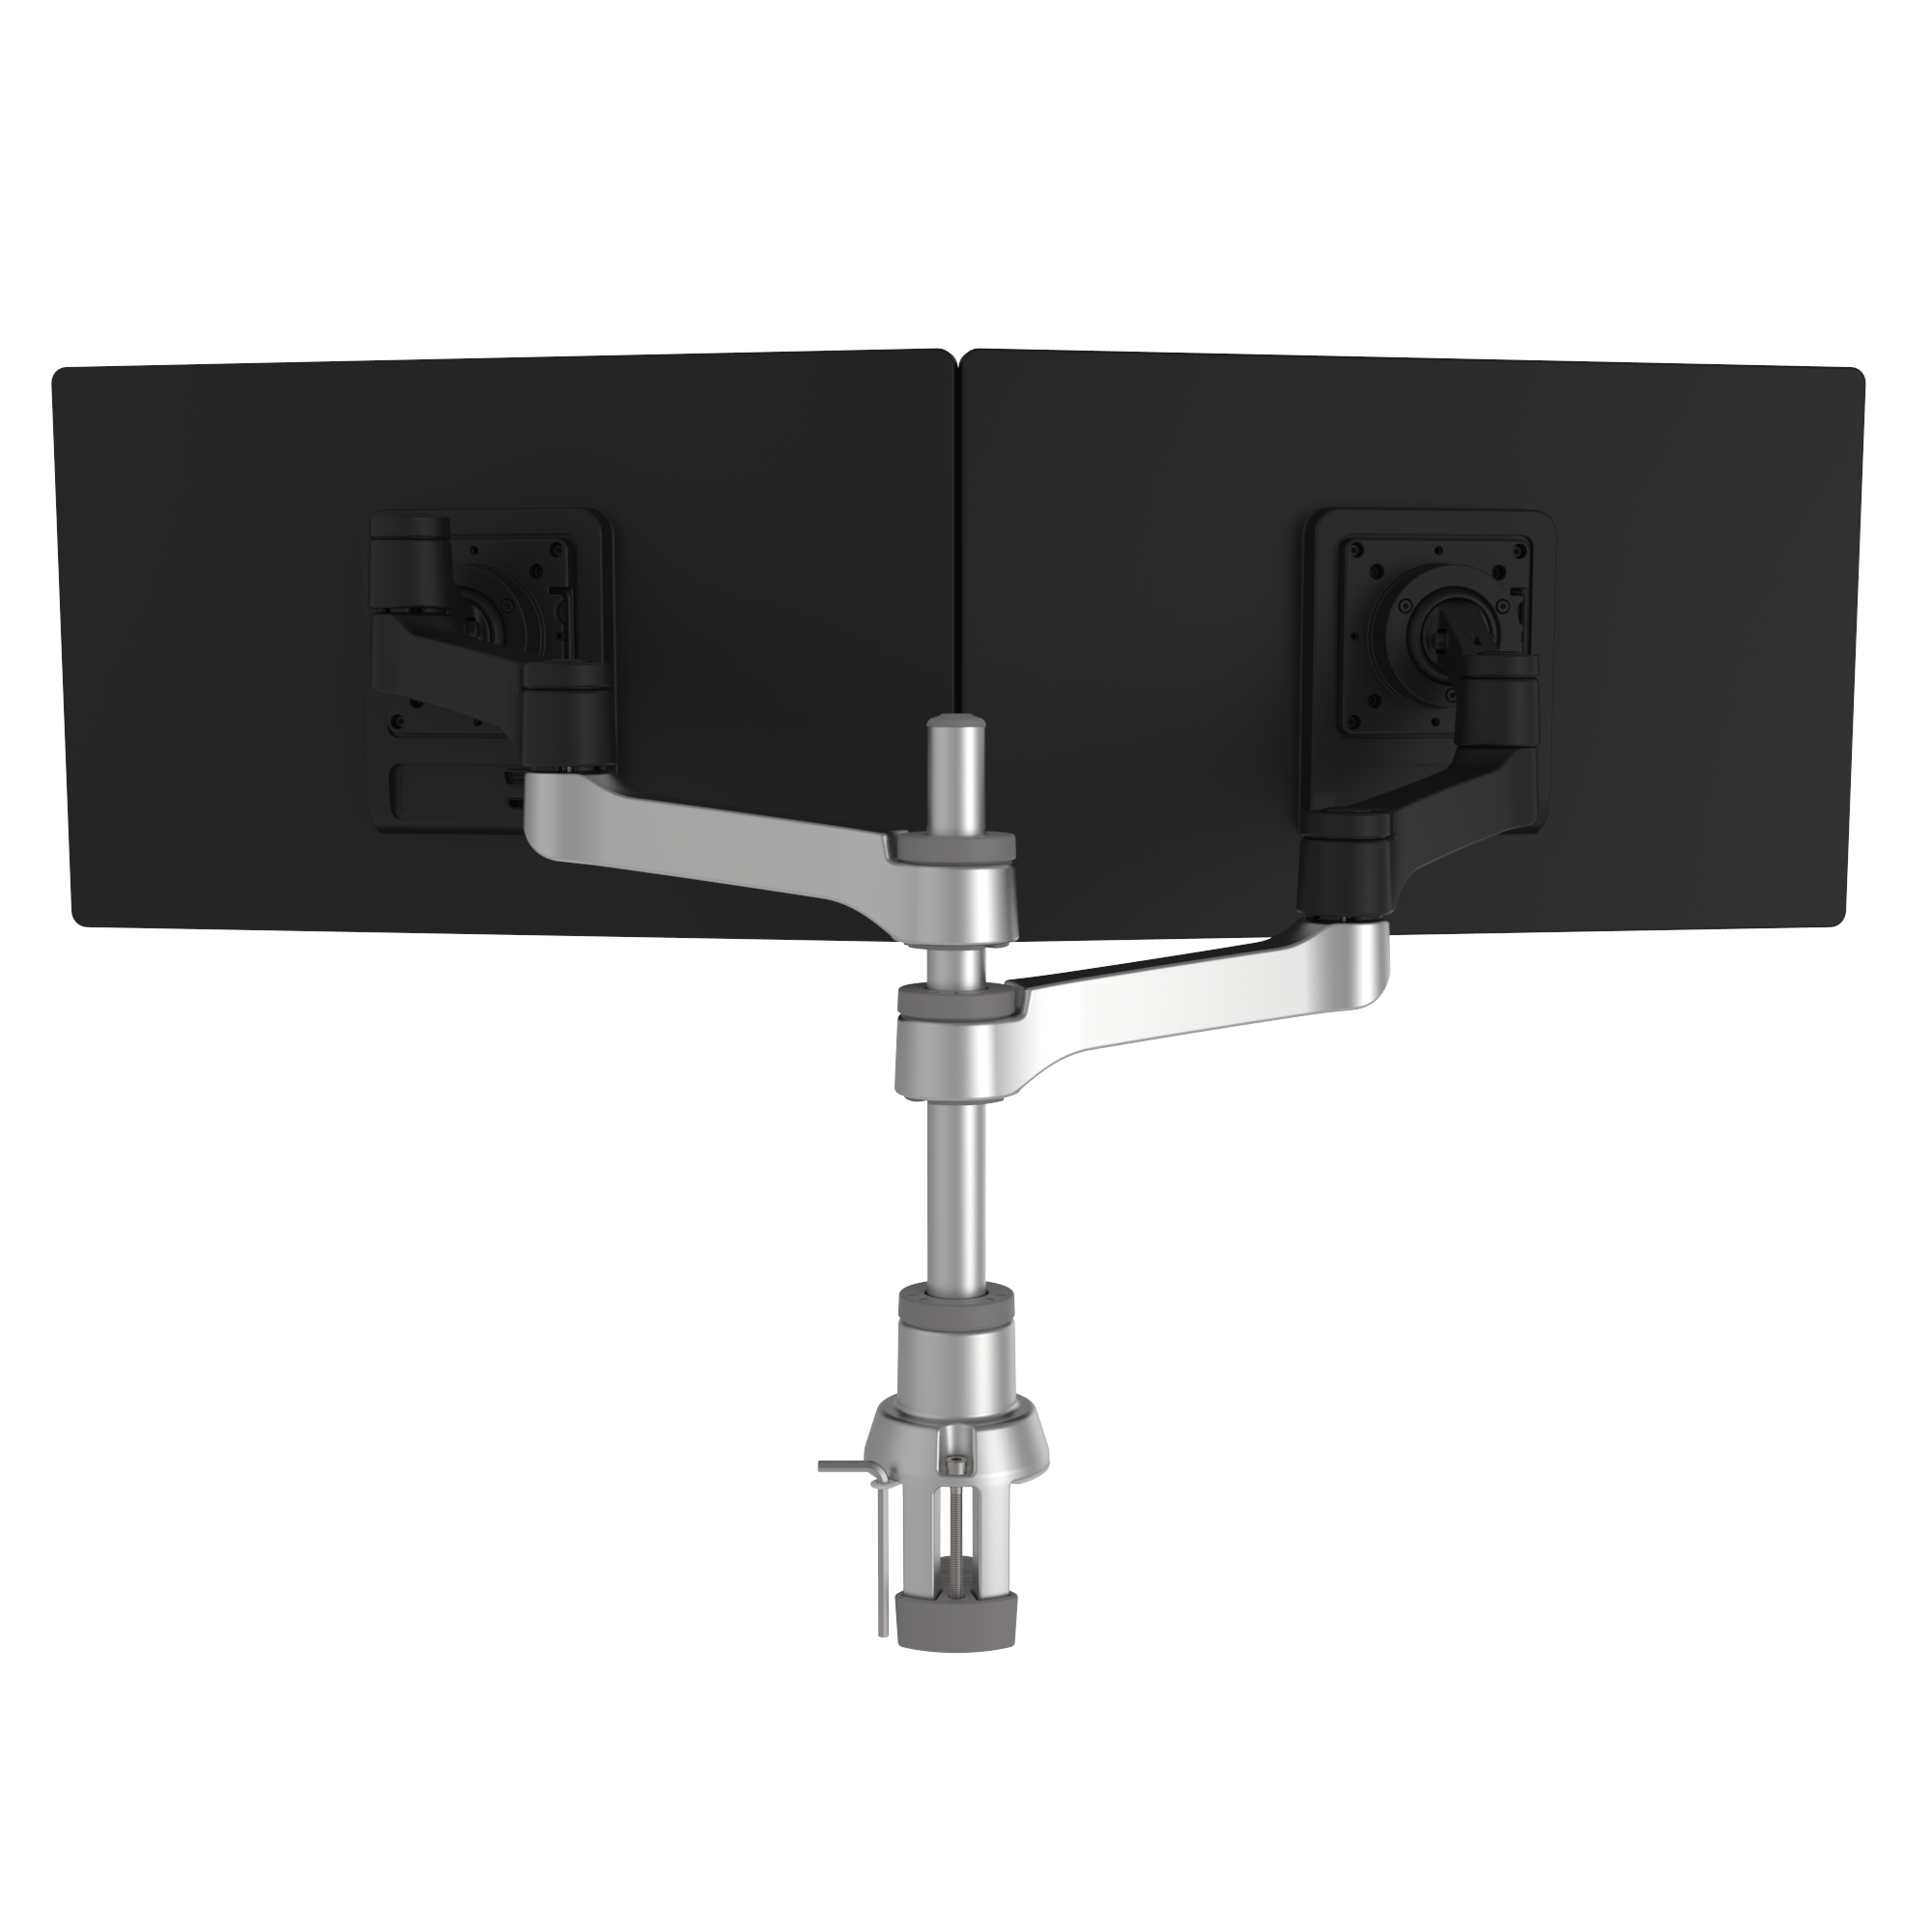 R-Go Zepher 4 C2, Circular Dual Monitor Arm, Desk Mount, Adjustable, 0-8 kg, Black-Silver, Low Carbon Footprint - 3